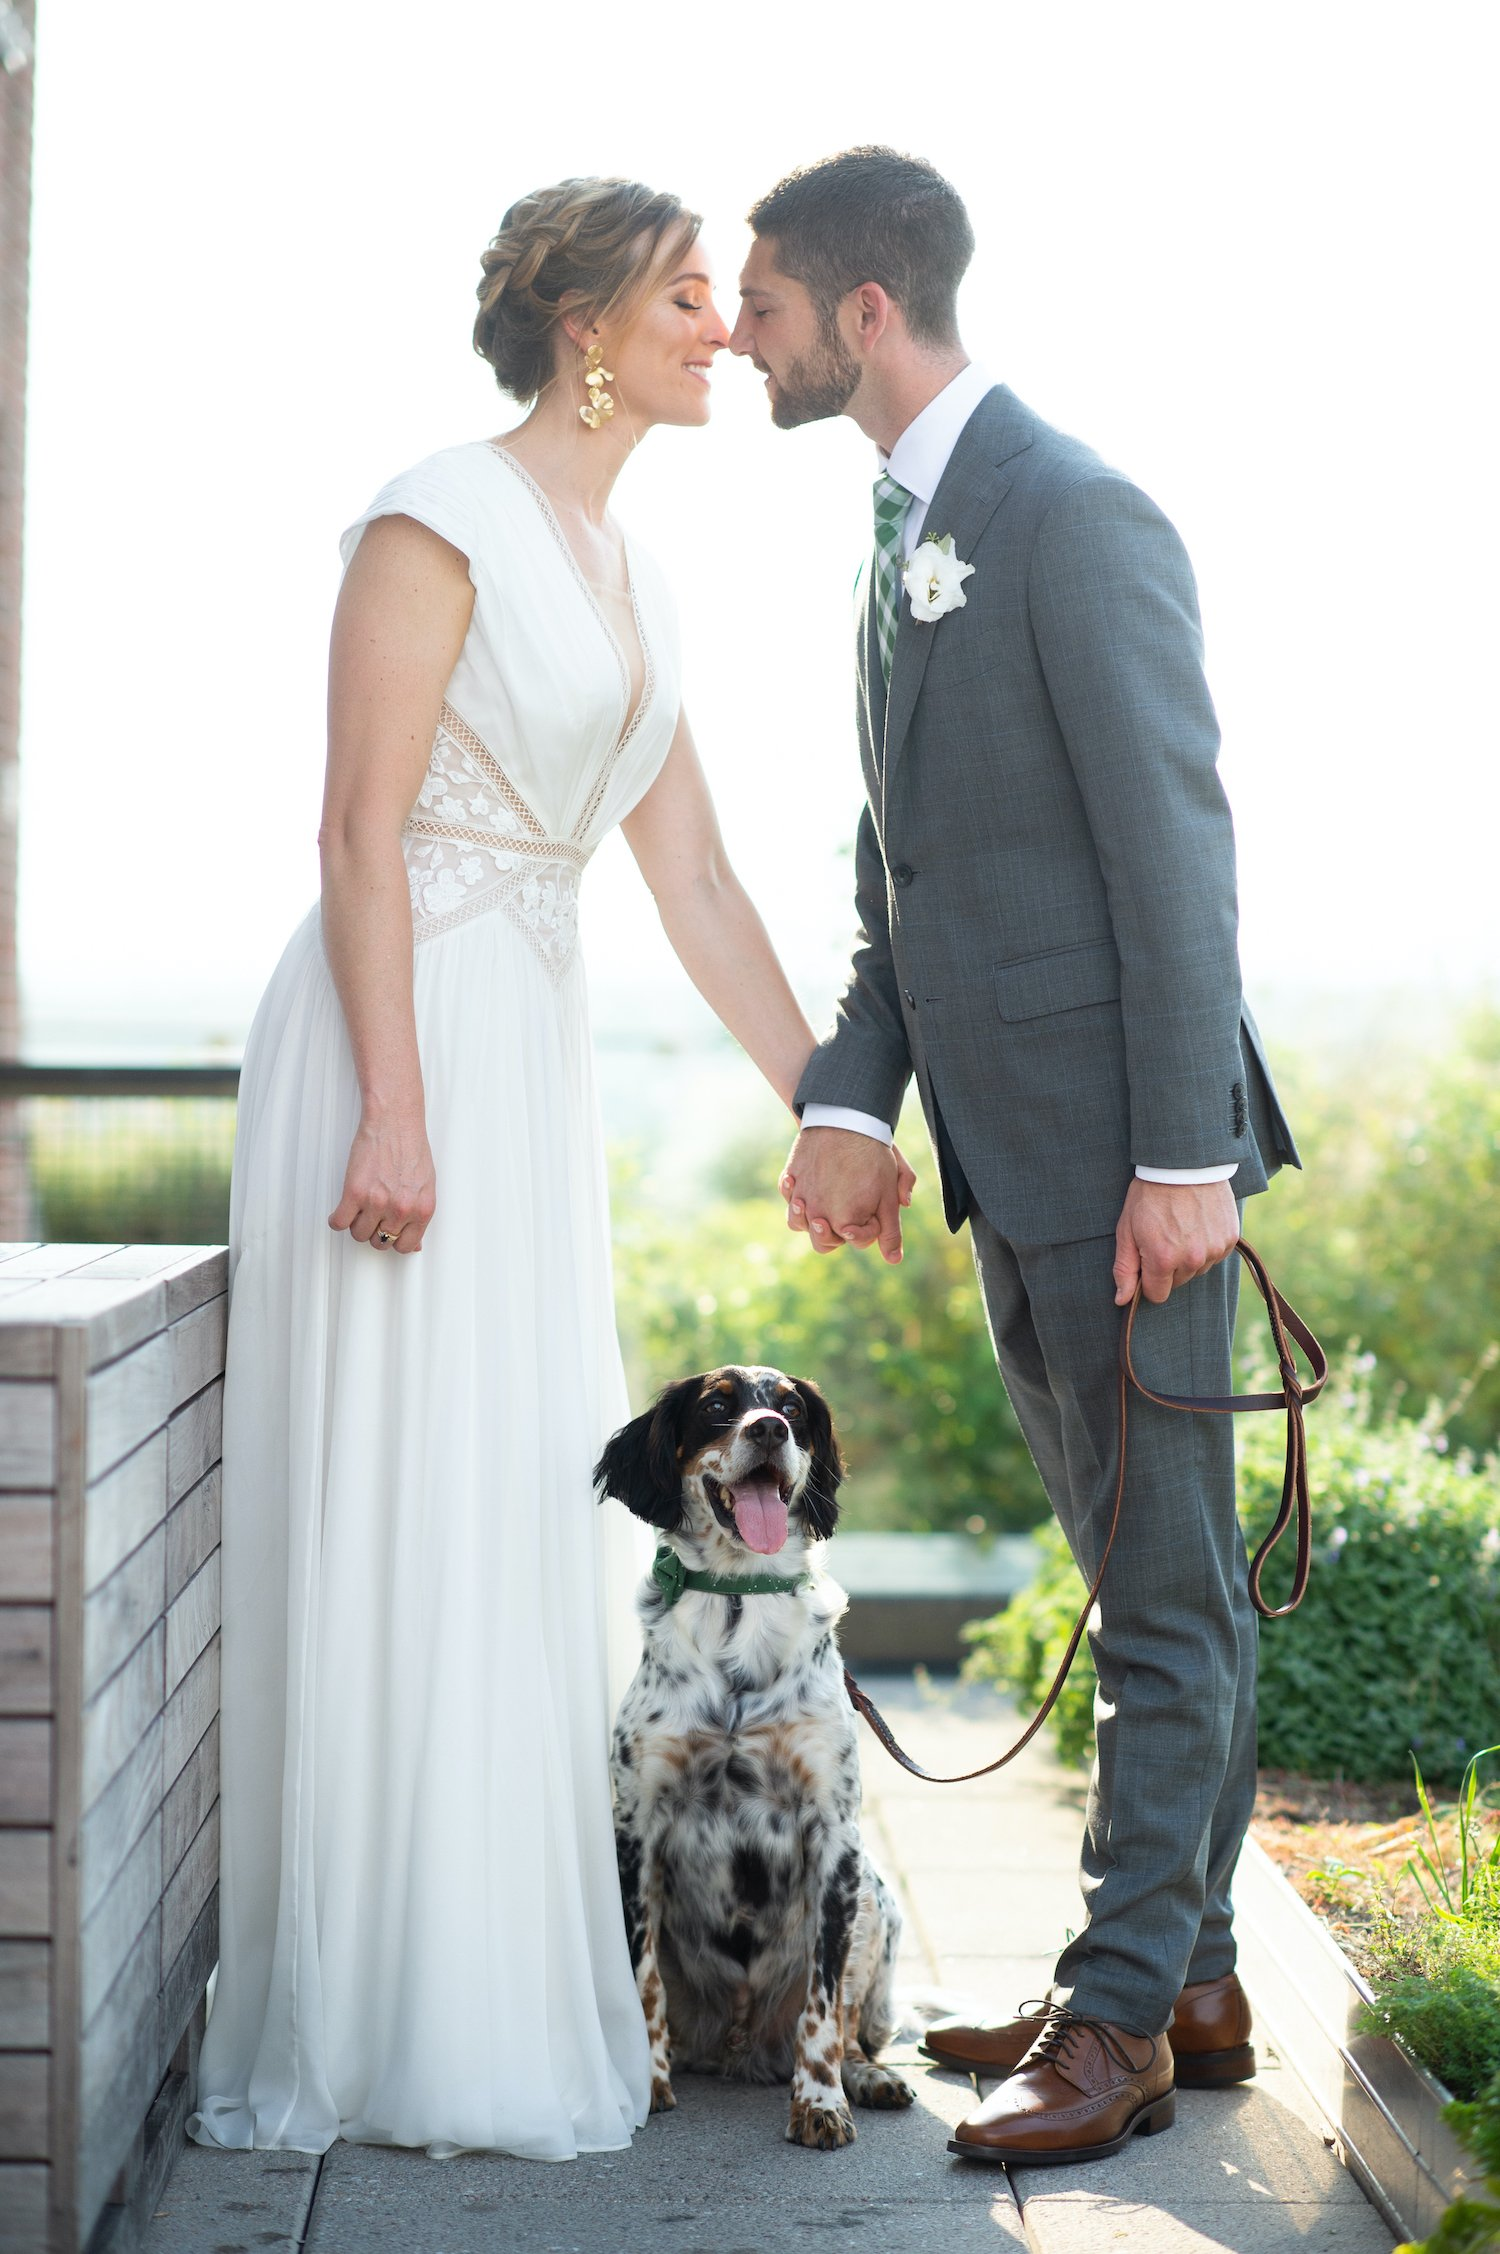 The-Line-DC-Fall-Wedding-Dog-Cake-Planner-Agriffin-events-00001